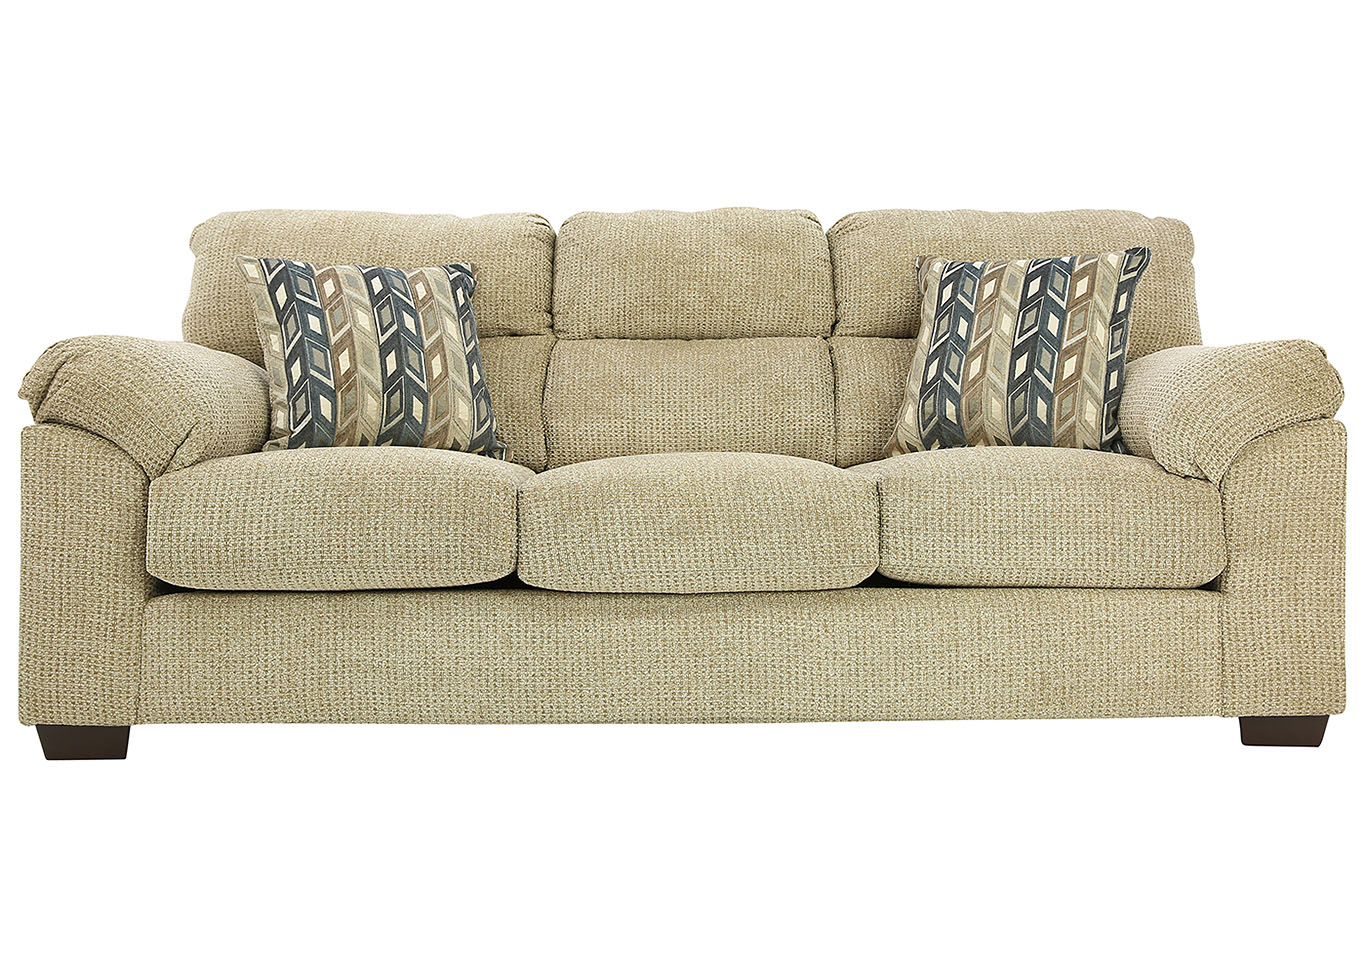 Ivan Smith Hometown Sesame Sofa